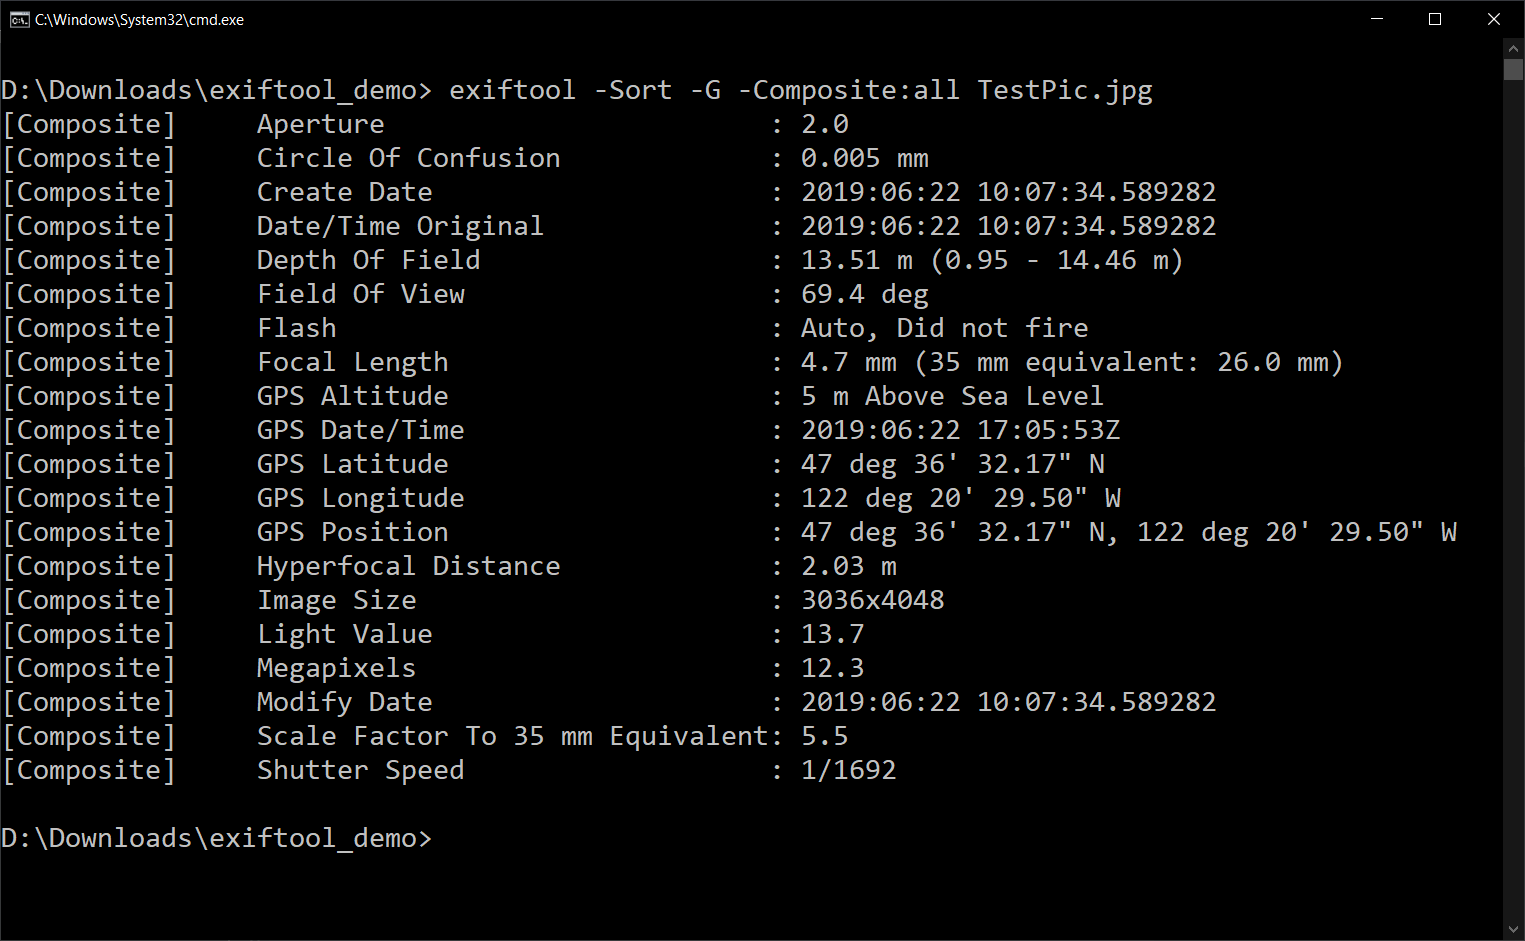 Using -sort with the command from the previous section.